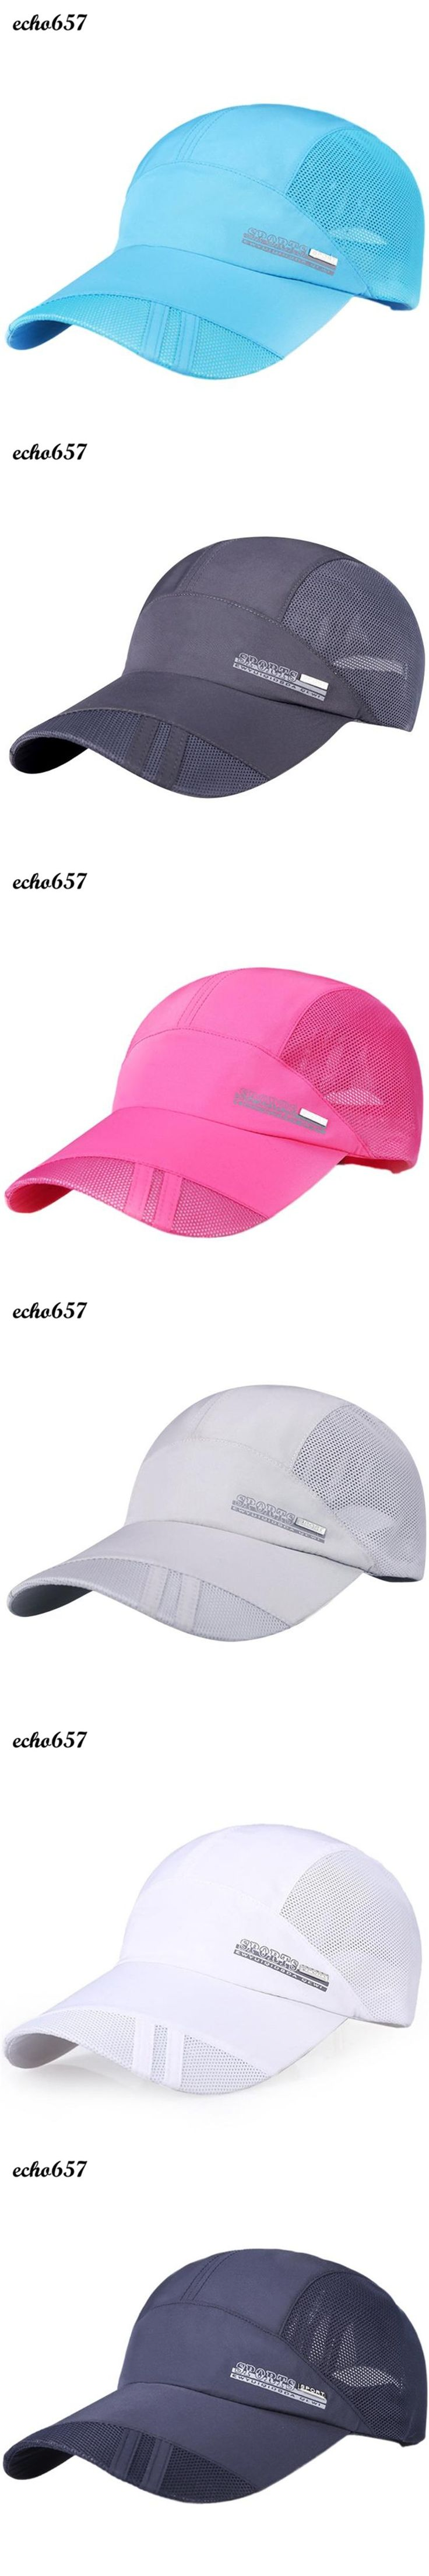 Hot Sale Fashion Sun Hats Echo657 New Designer Fashion Adult Mesh Hat Quick-Dry Collapsible Sun Hat Jan 4